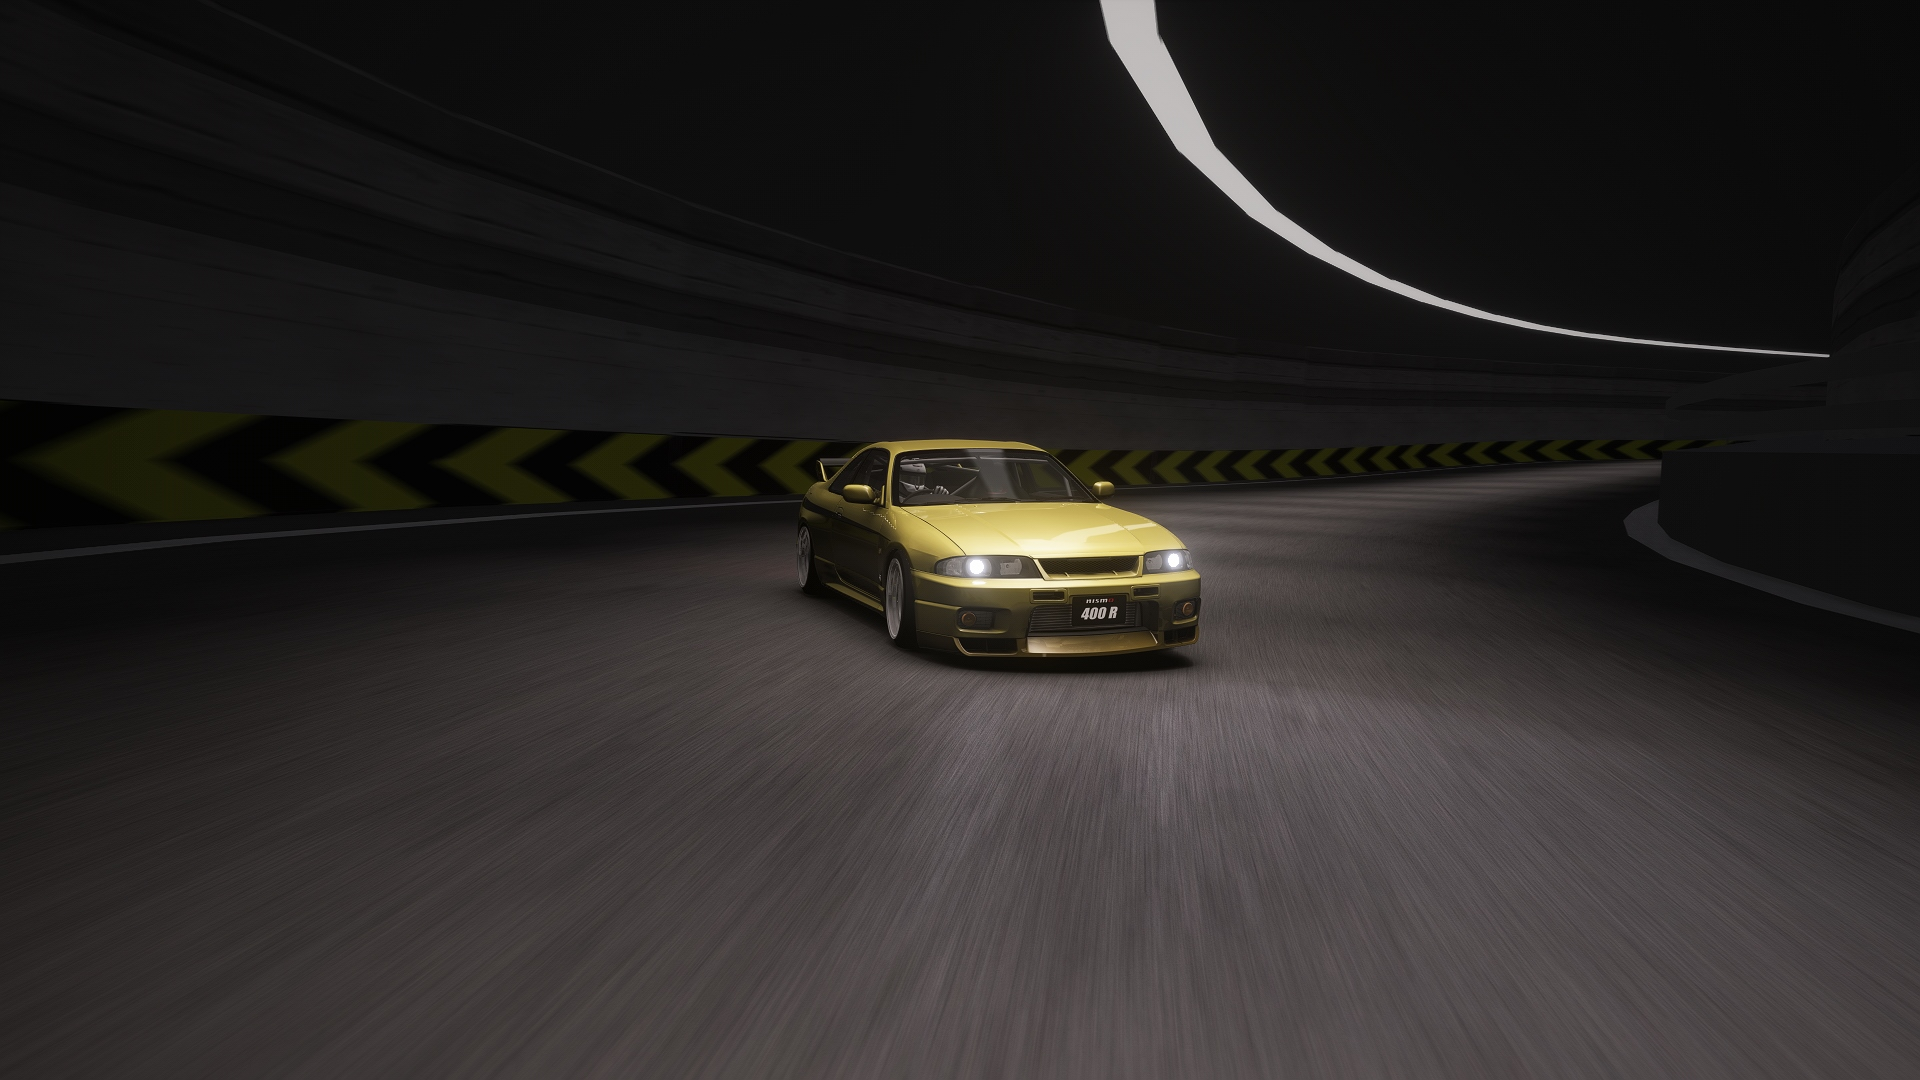 Screenshot_sts_r33_gtr_s3_n1_tuned_400r_special_stage_route_5_3-6-121-1-53-0.jpg